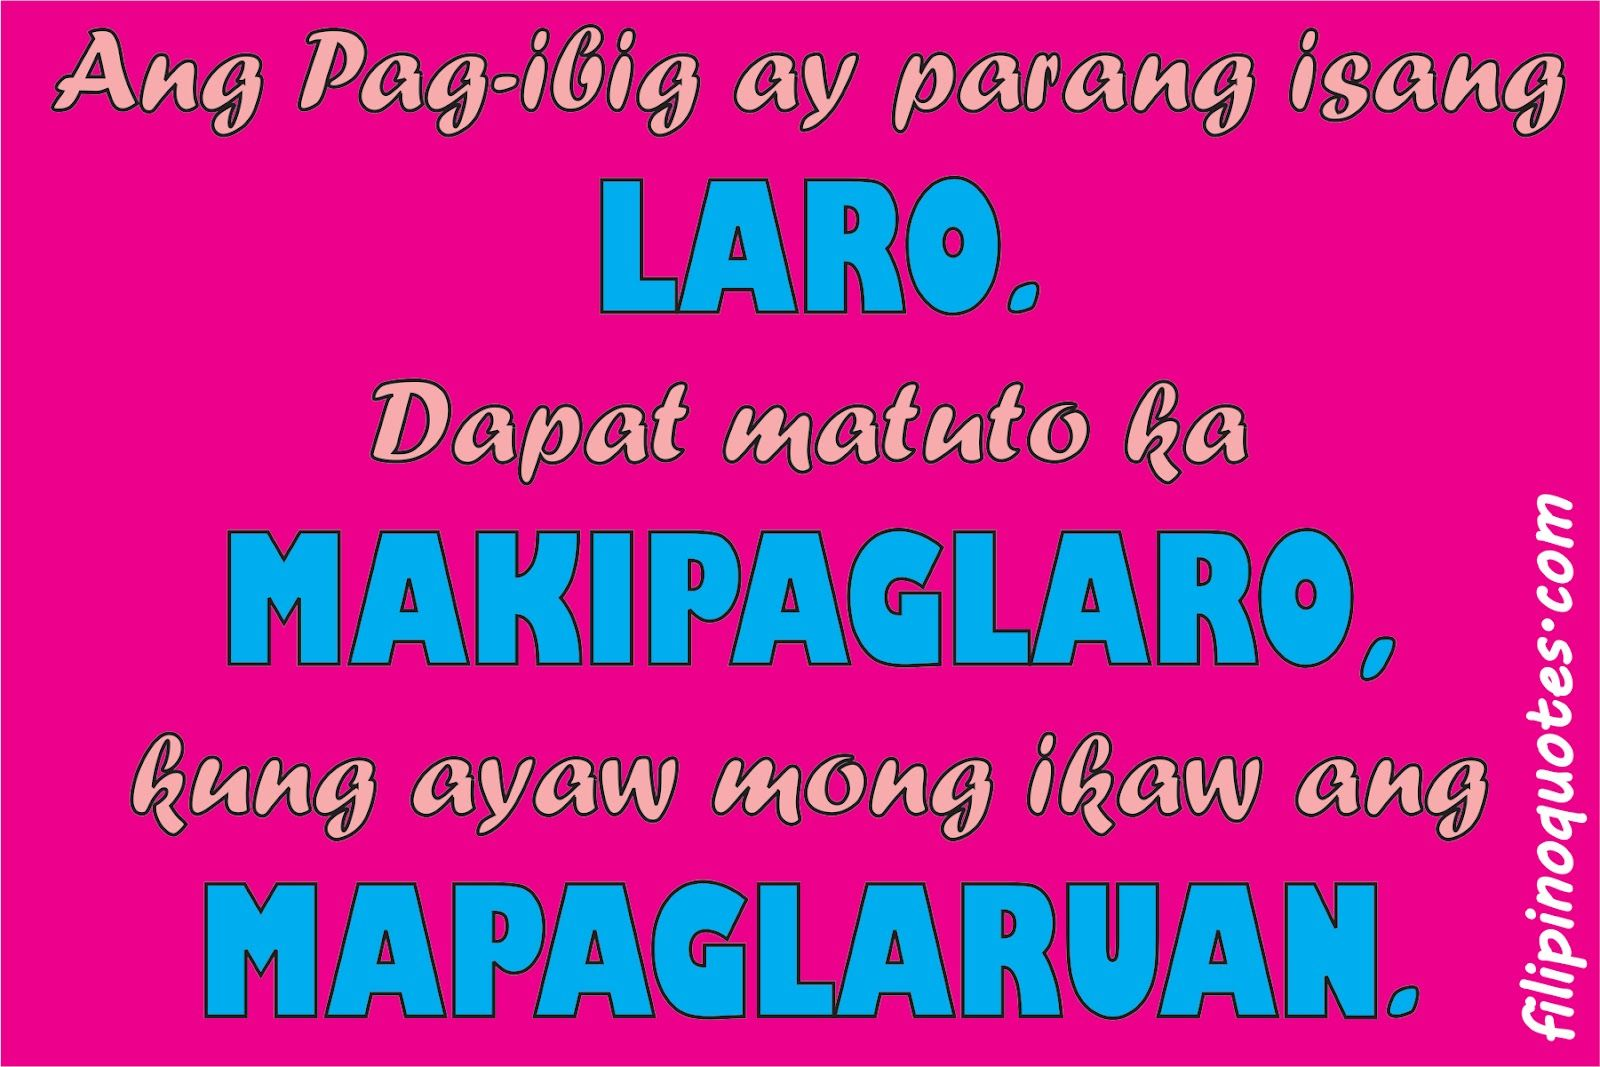 Sad Quotes About Love Tagalog Version : sad emo quotes tagalog love quotes love quotes for her quotes for him ...